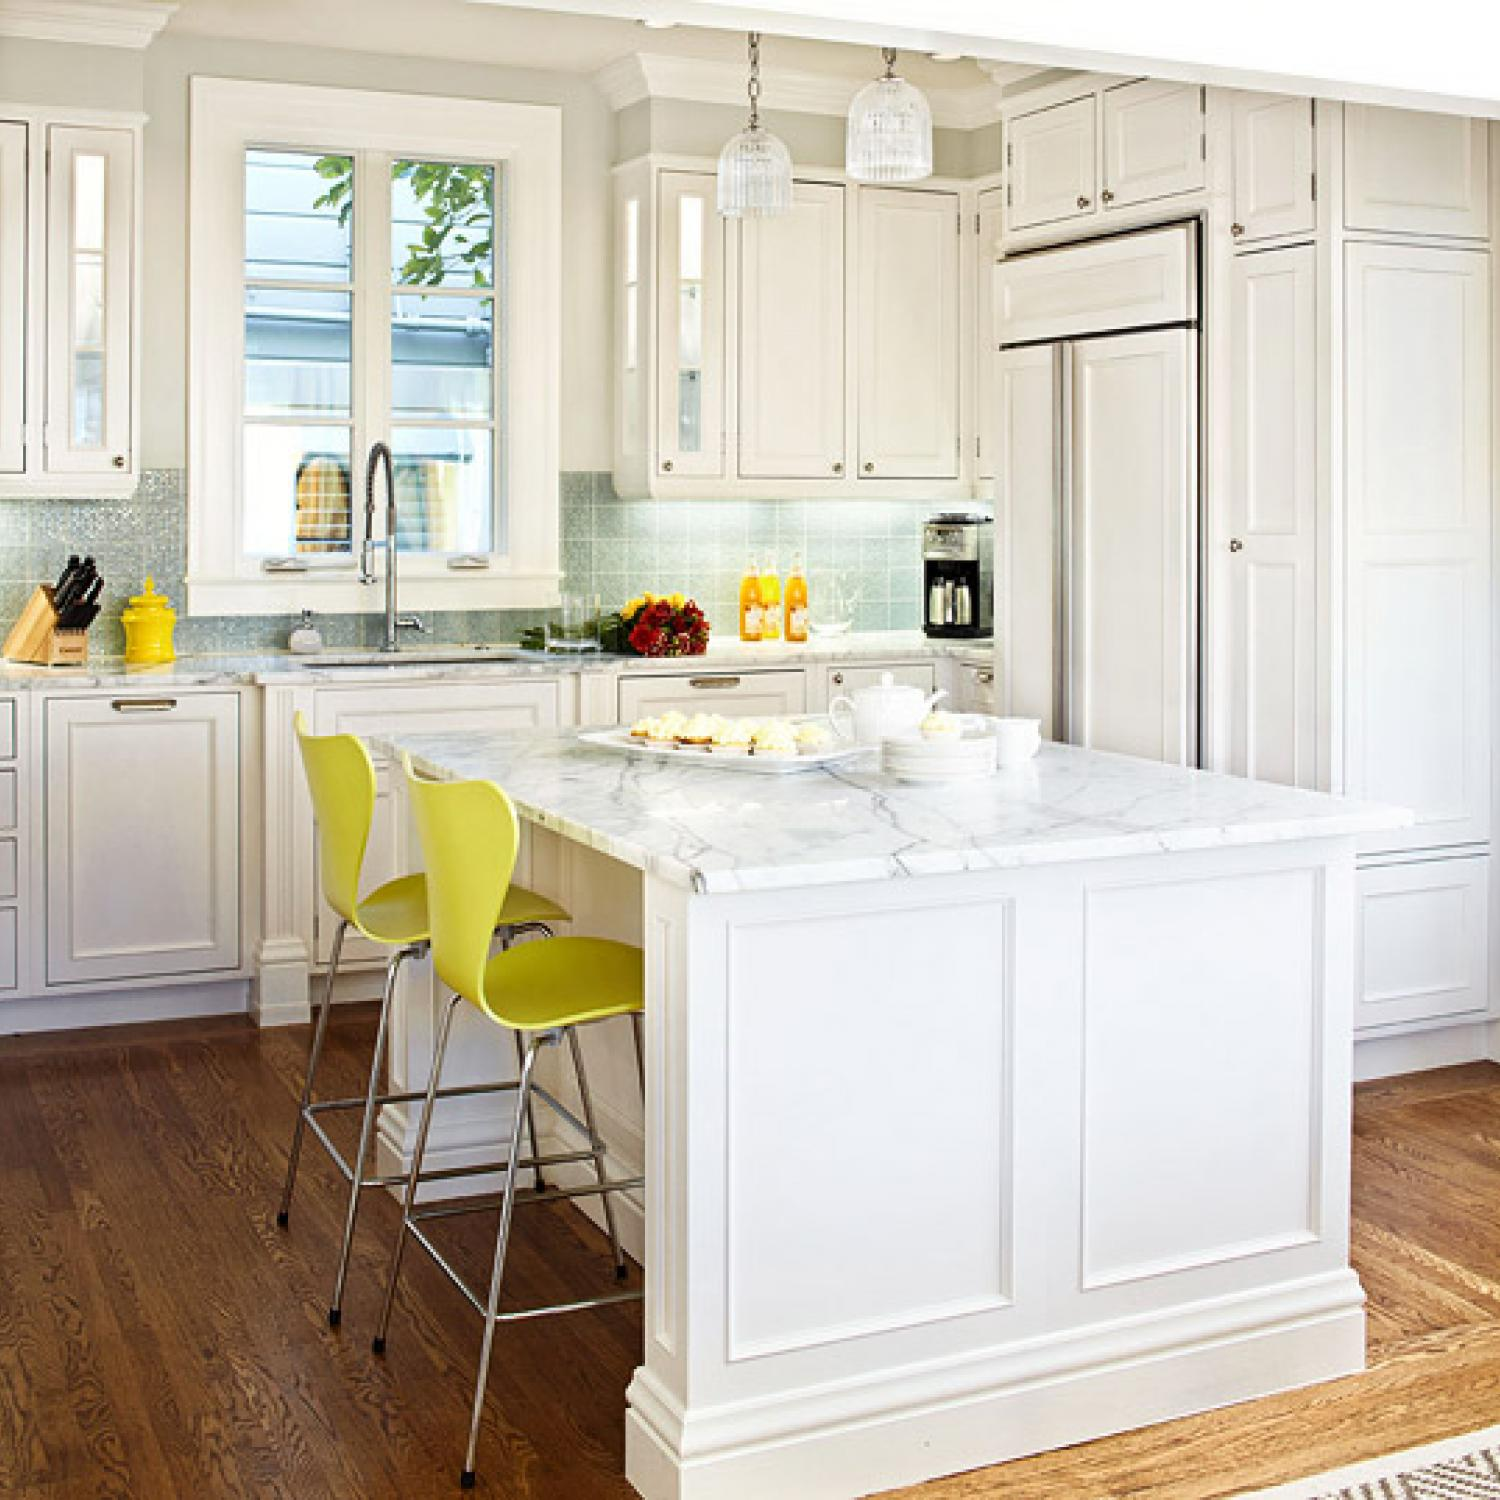 Design ideas for white kitchens traditional home for Small kitchens with white cabinets